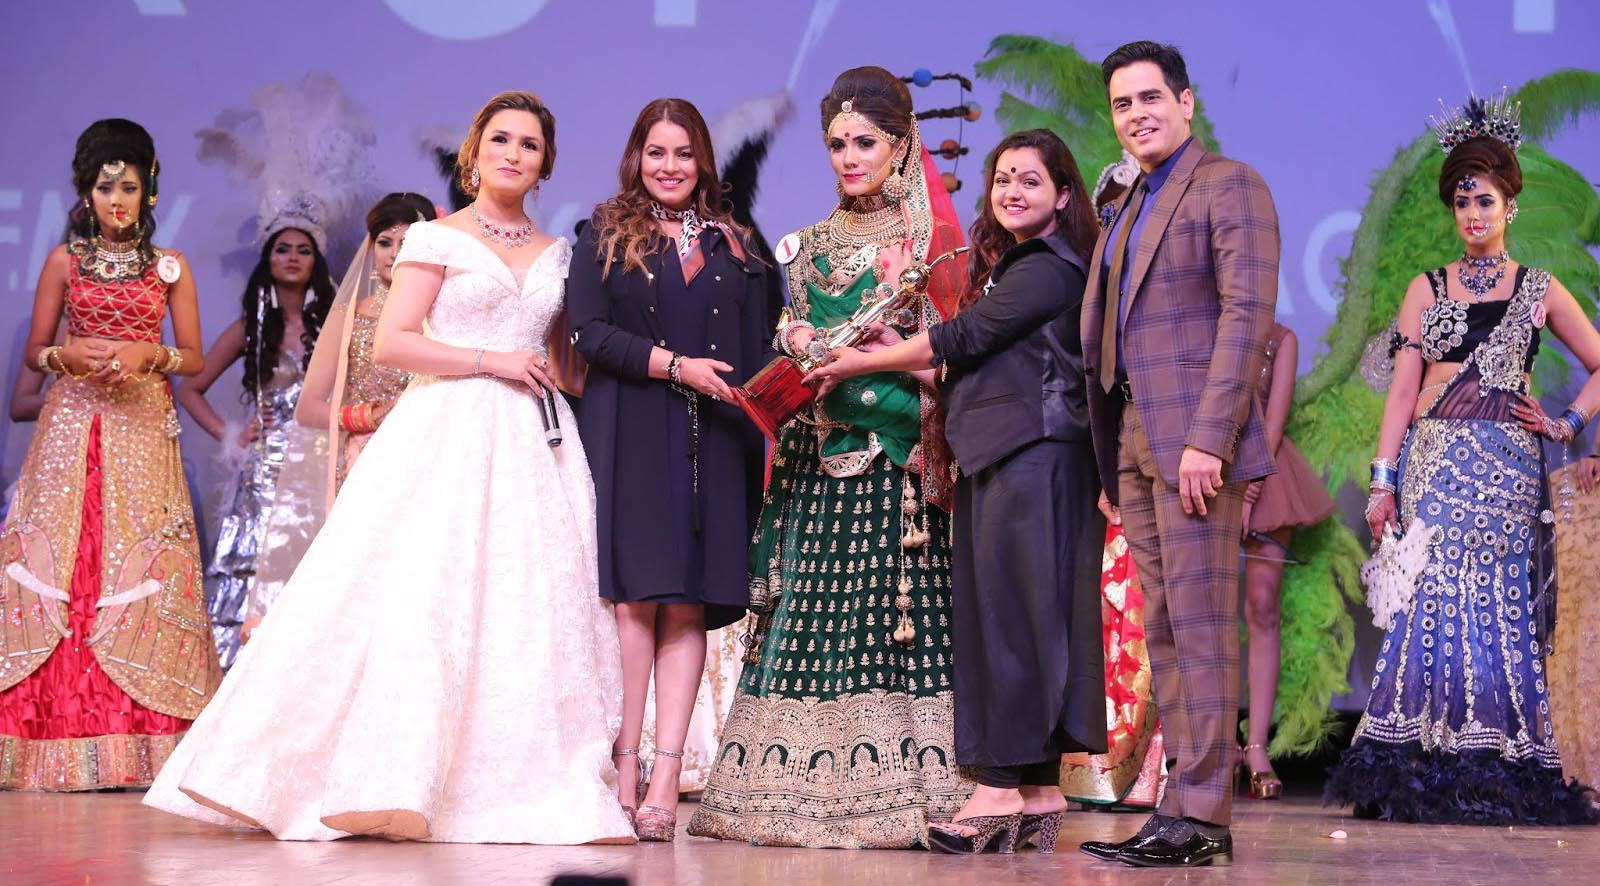 From left Hair and Makeup Expert Aashmeen Munjaal, Bollywood Actress Mahima Chaudhary and TV Actor Aman Verma with the star academy students